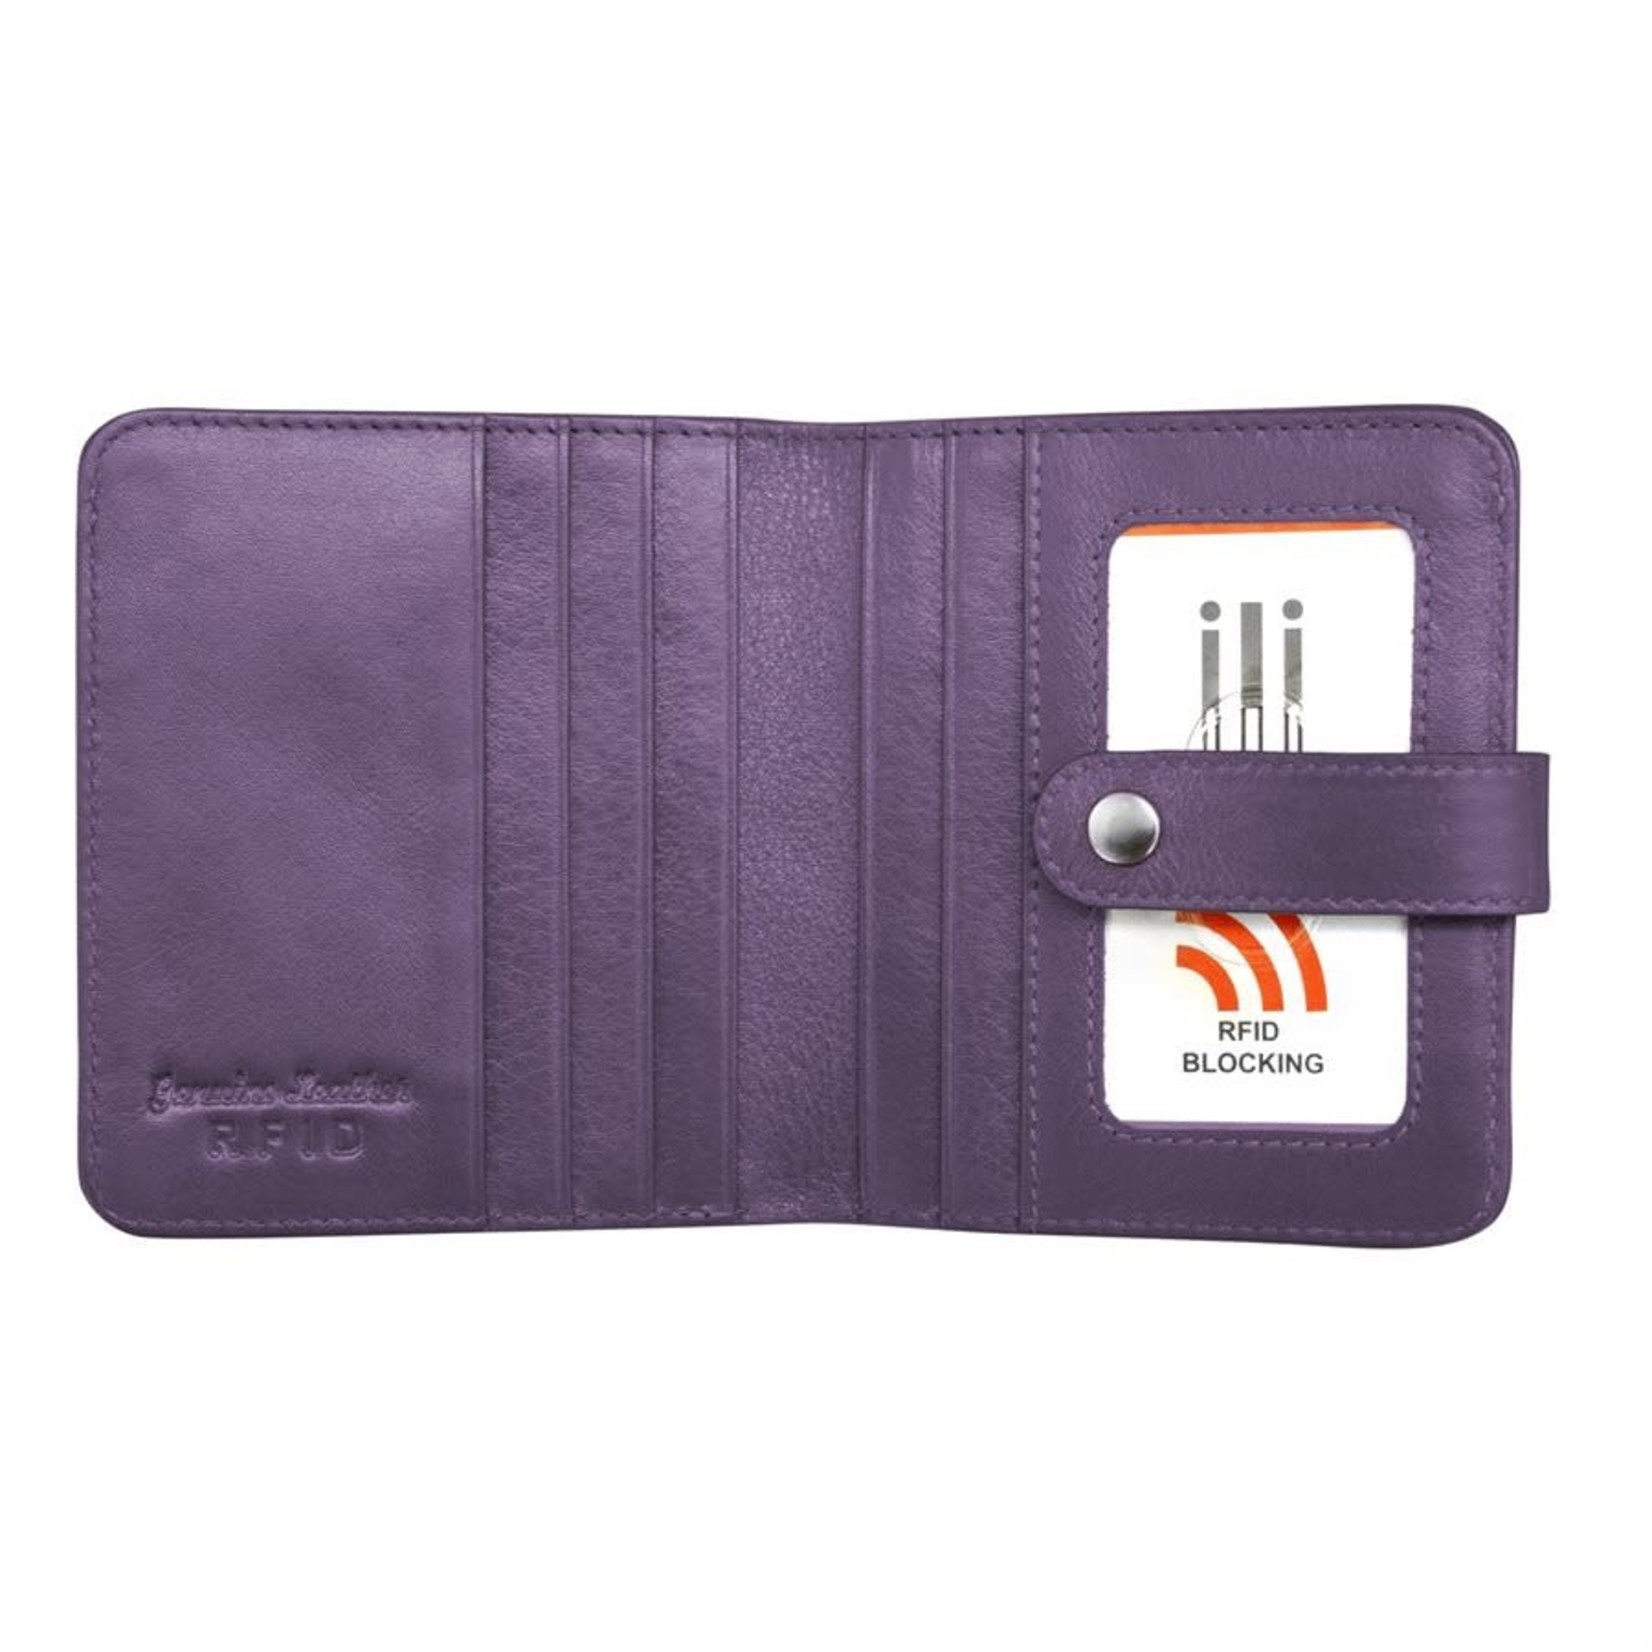 Leather Handbags and Accessories 7301 Purple - RFID Small Wallet